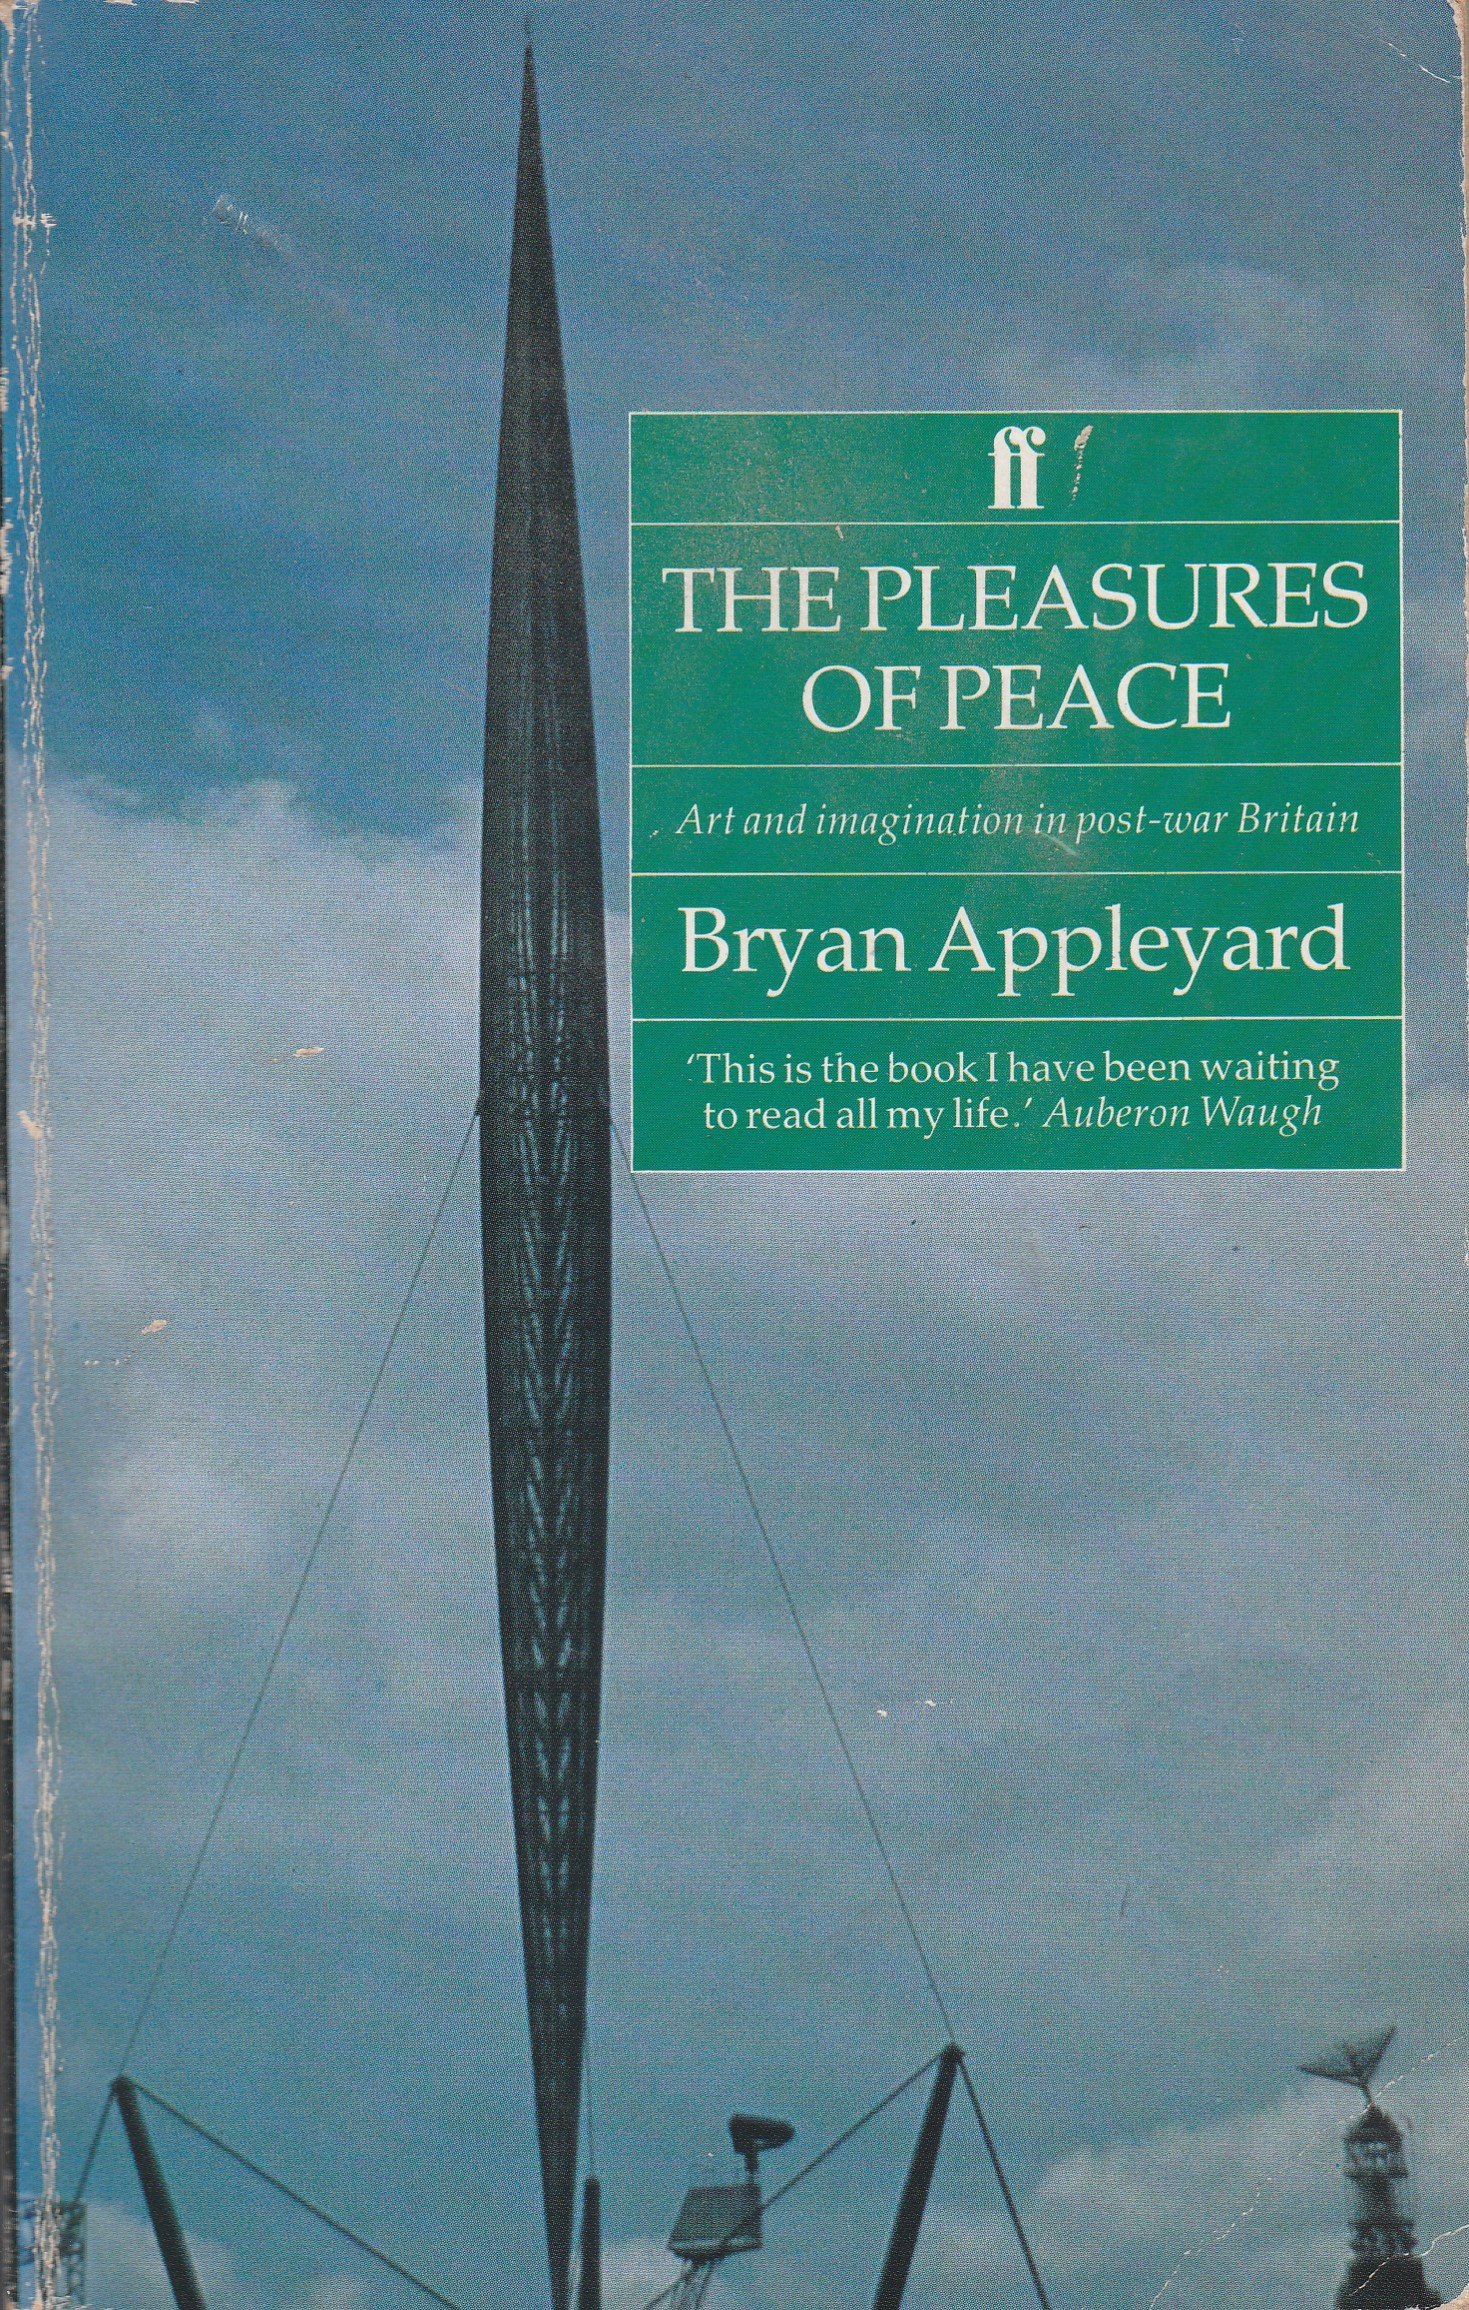 The Pleasures of Peace